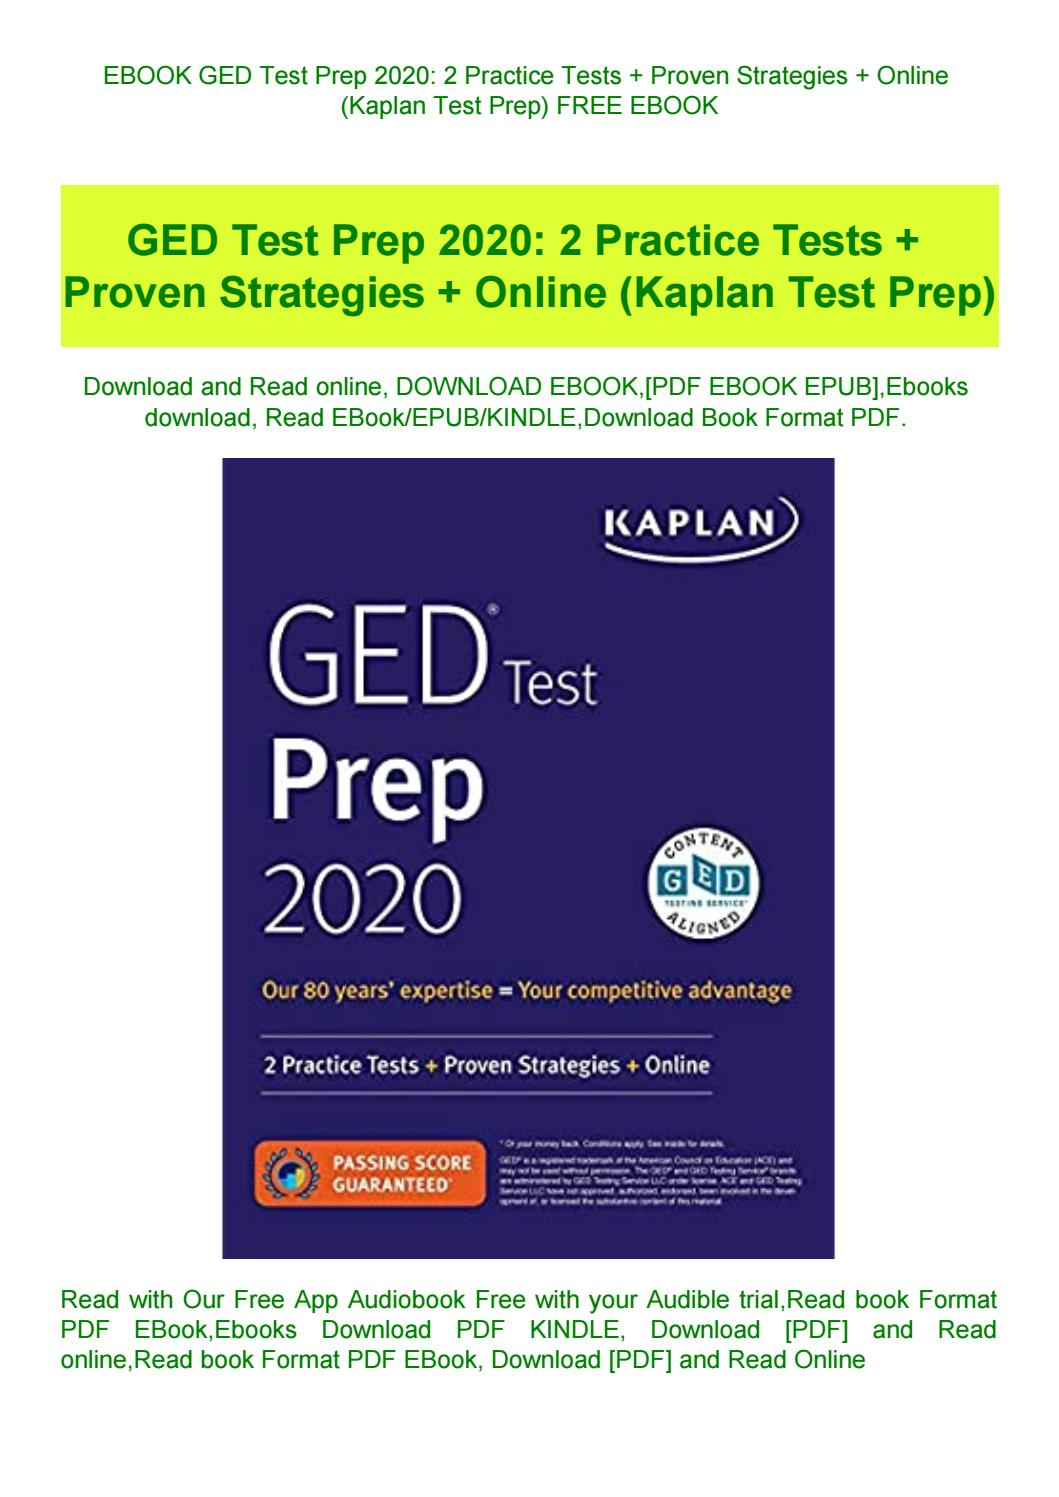 Ebook Ged Test Prep 2020 2 Practice Tests + Proven